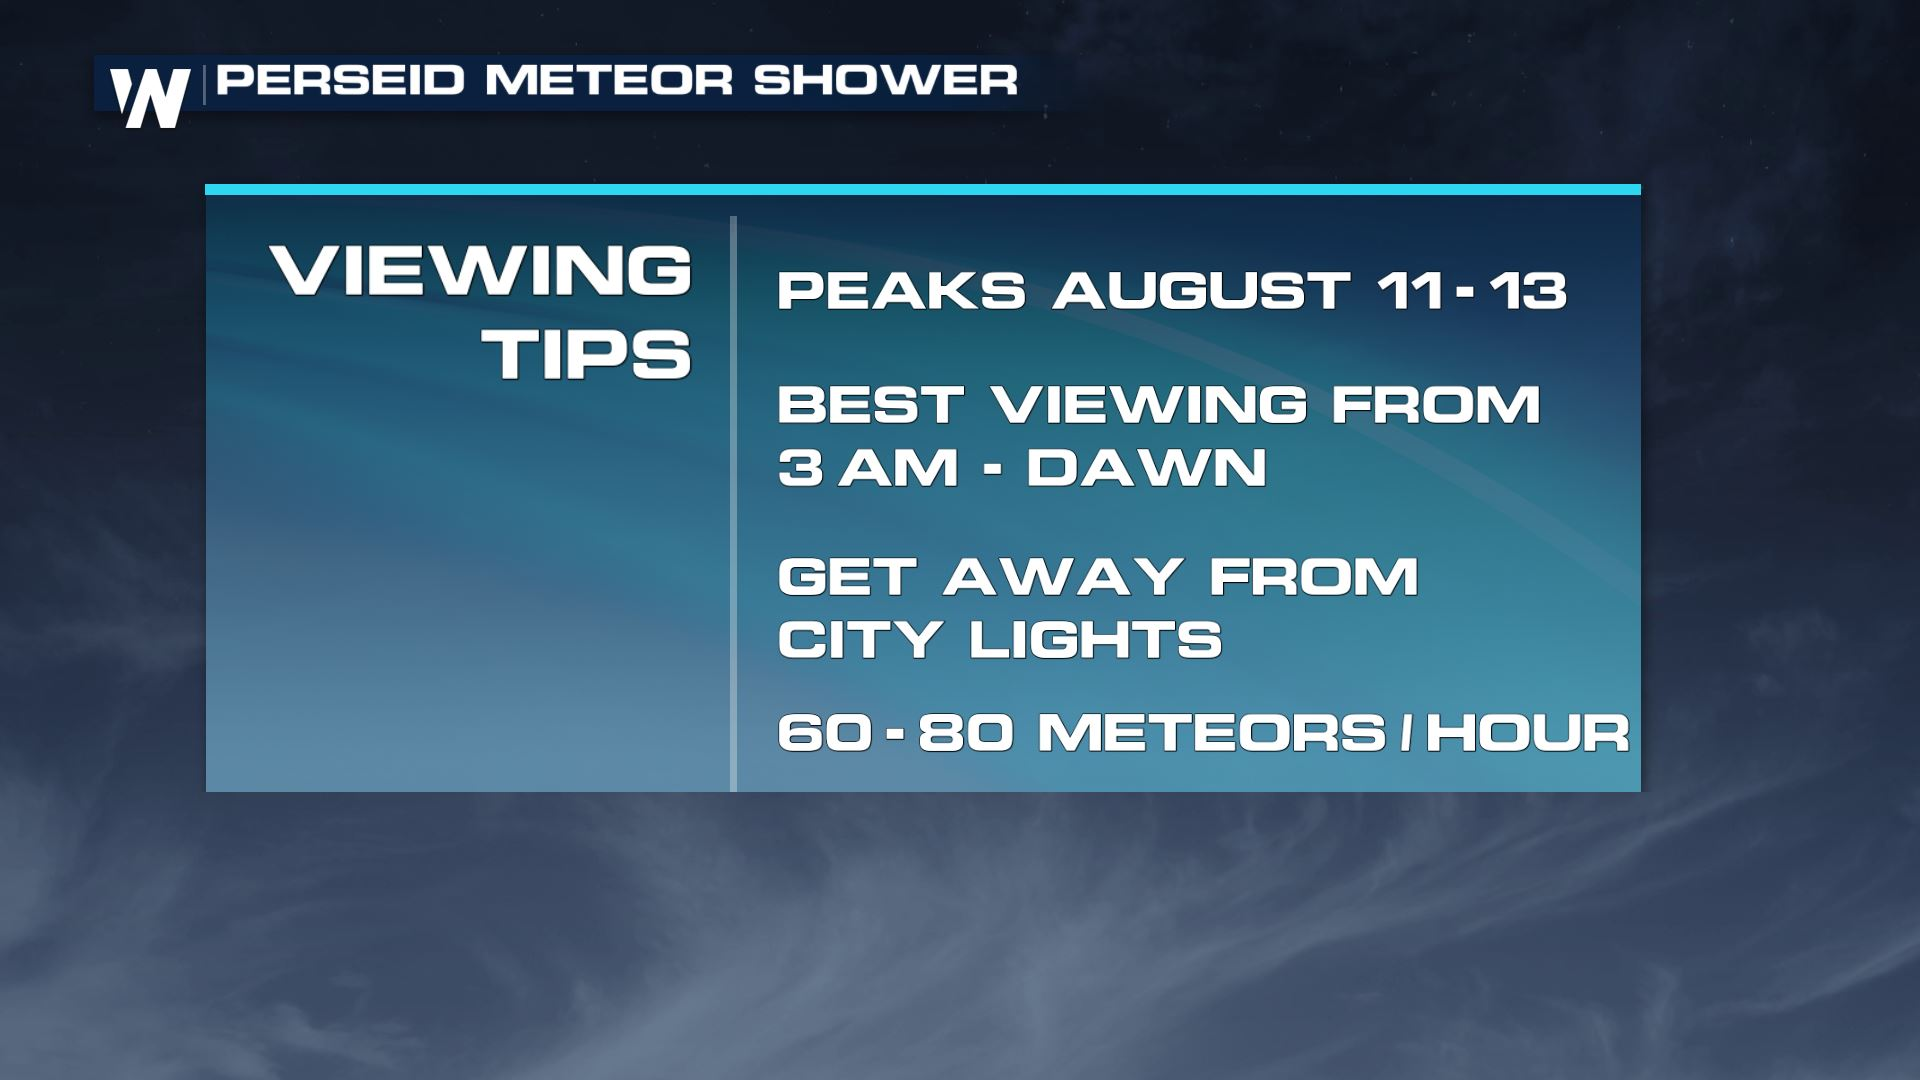 Look up: Perseid Meteor Shower Peaking Next Few Days